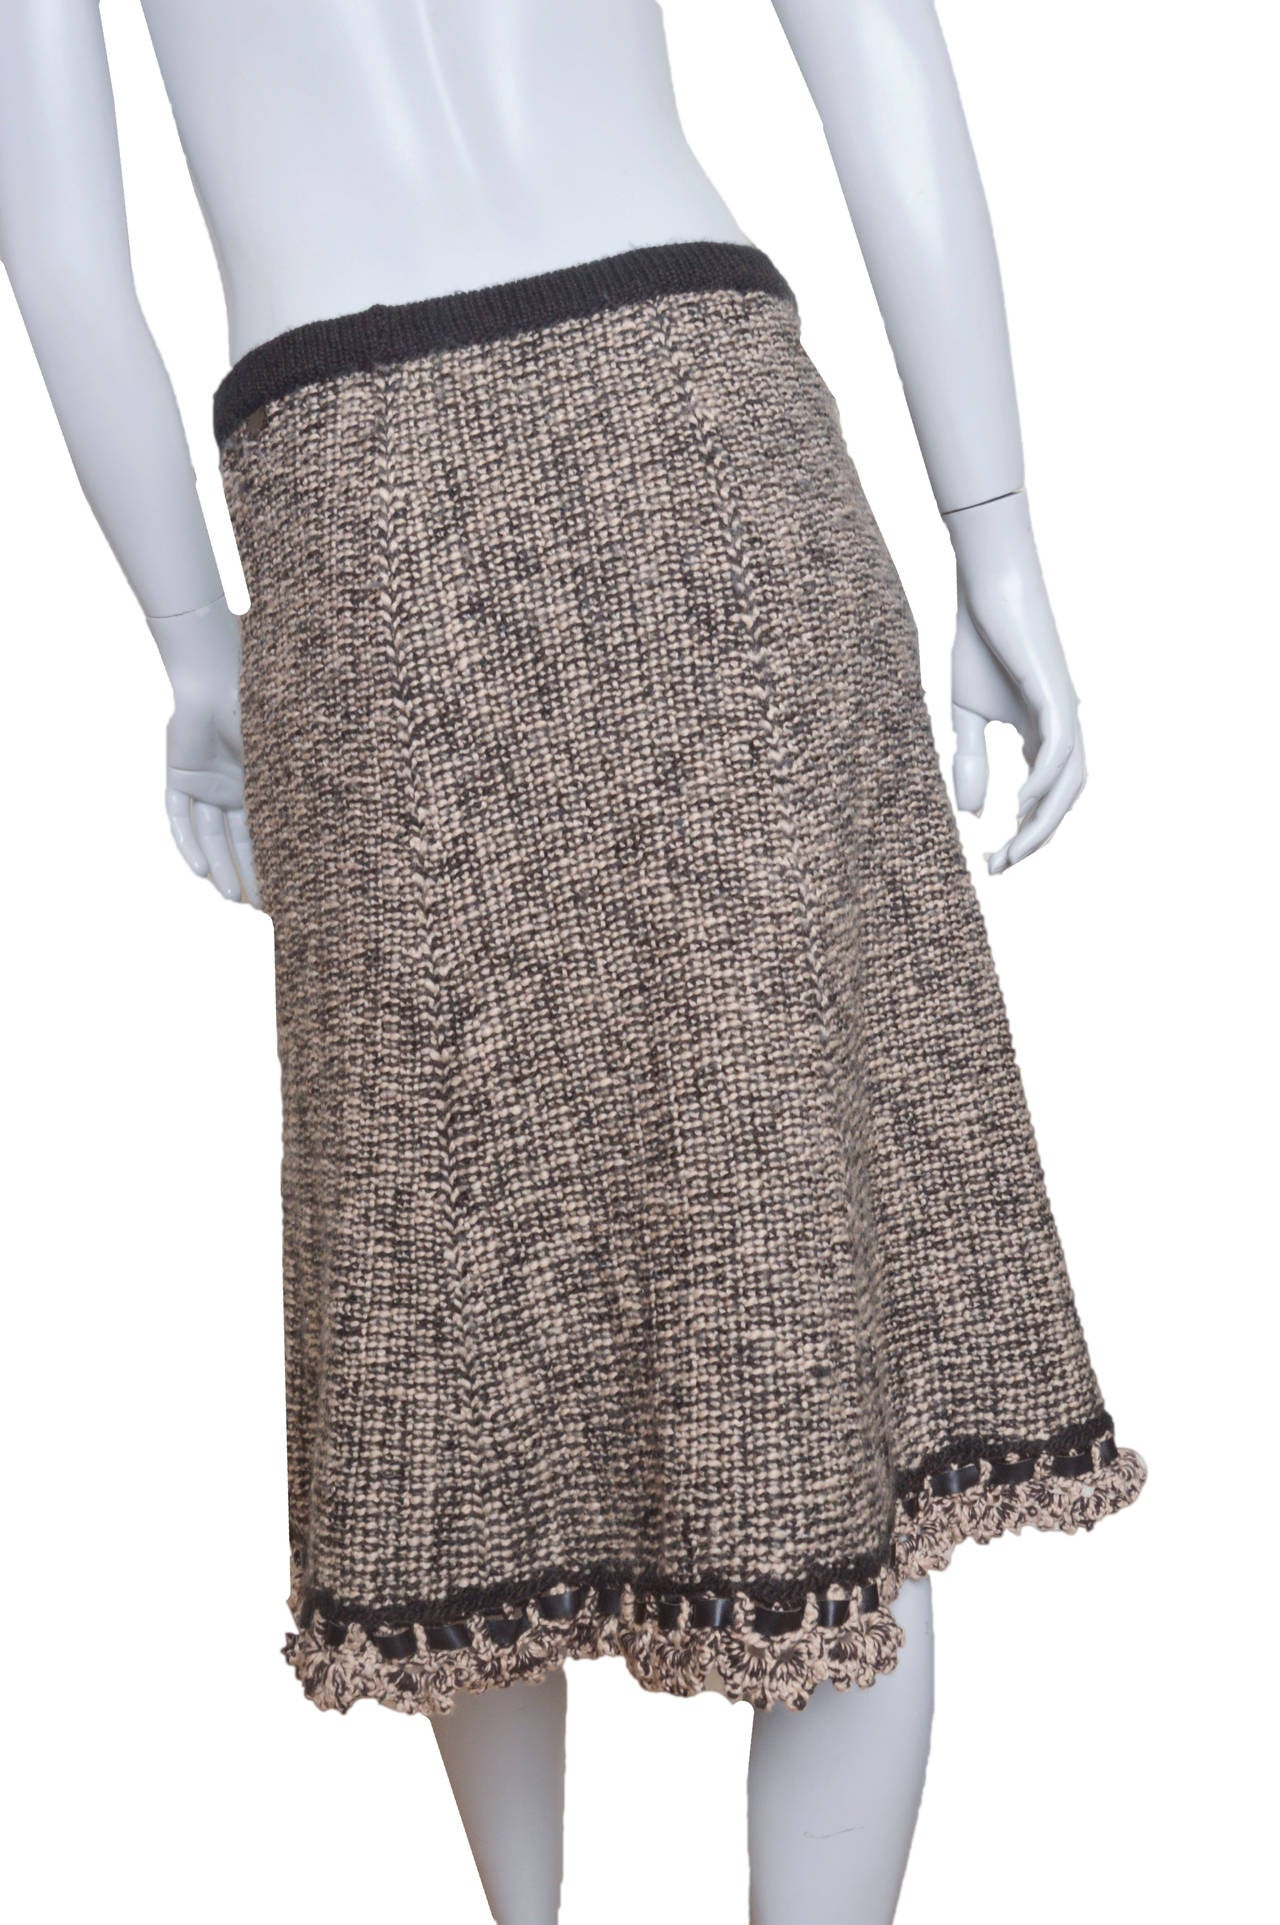 Chanel Woven Knit Skirt with Crochet Trim 3